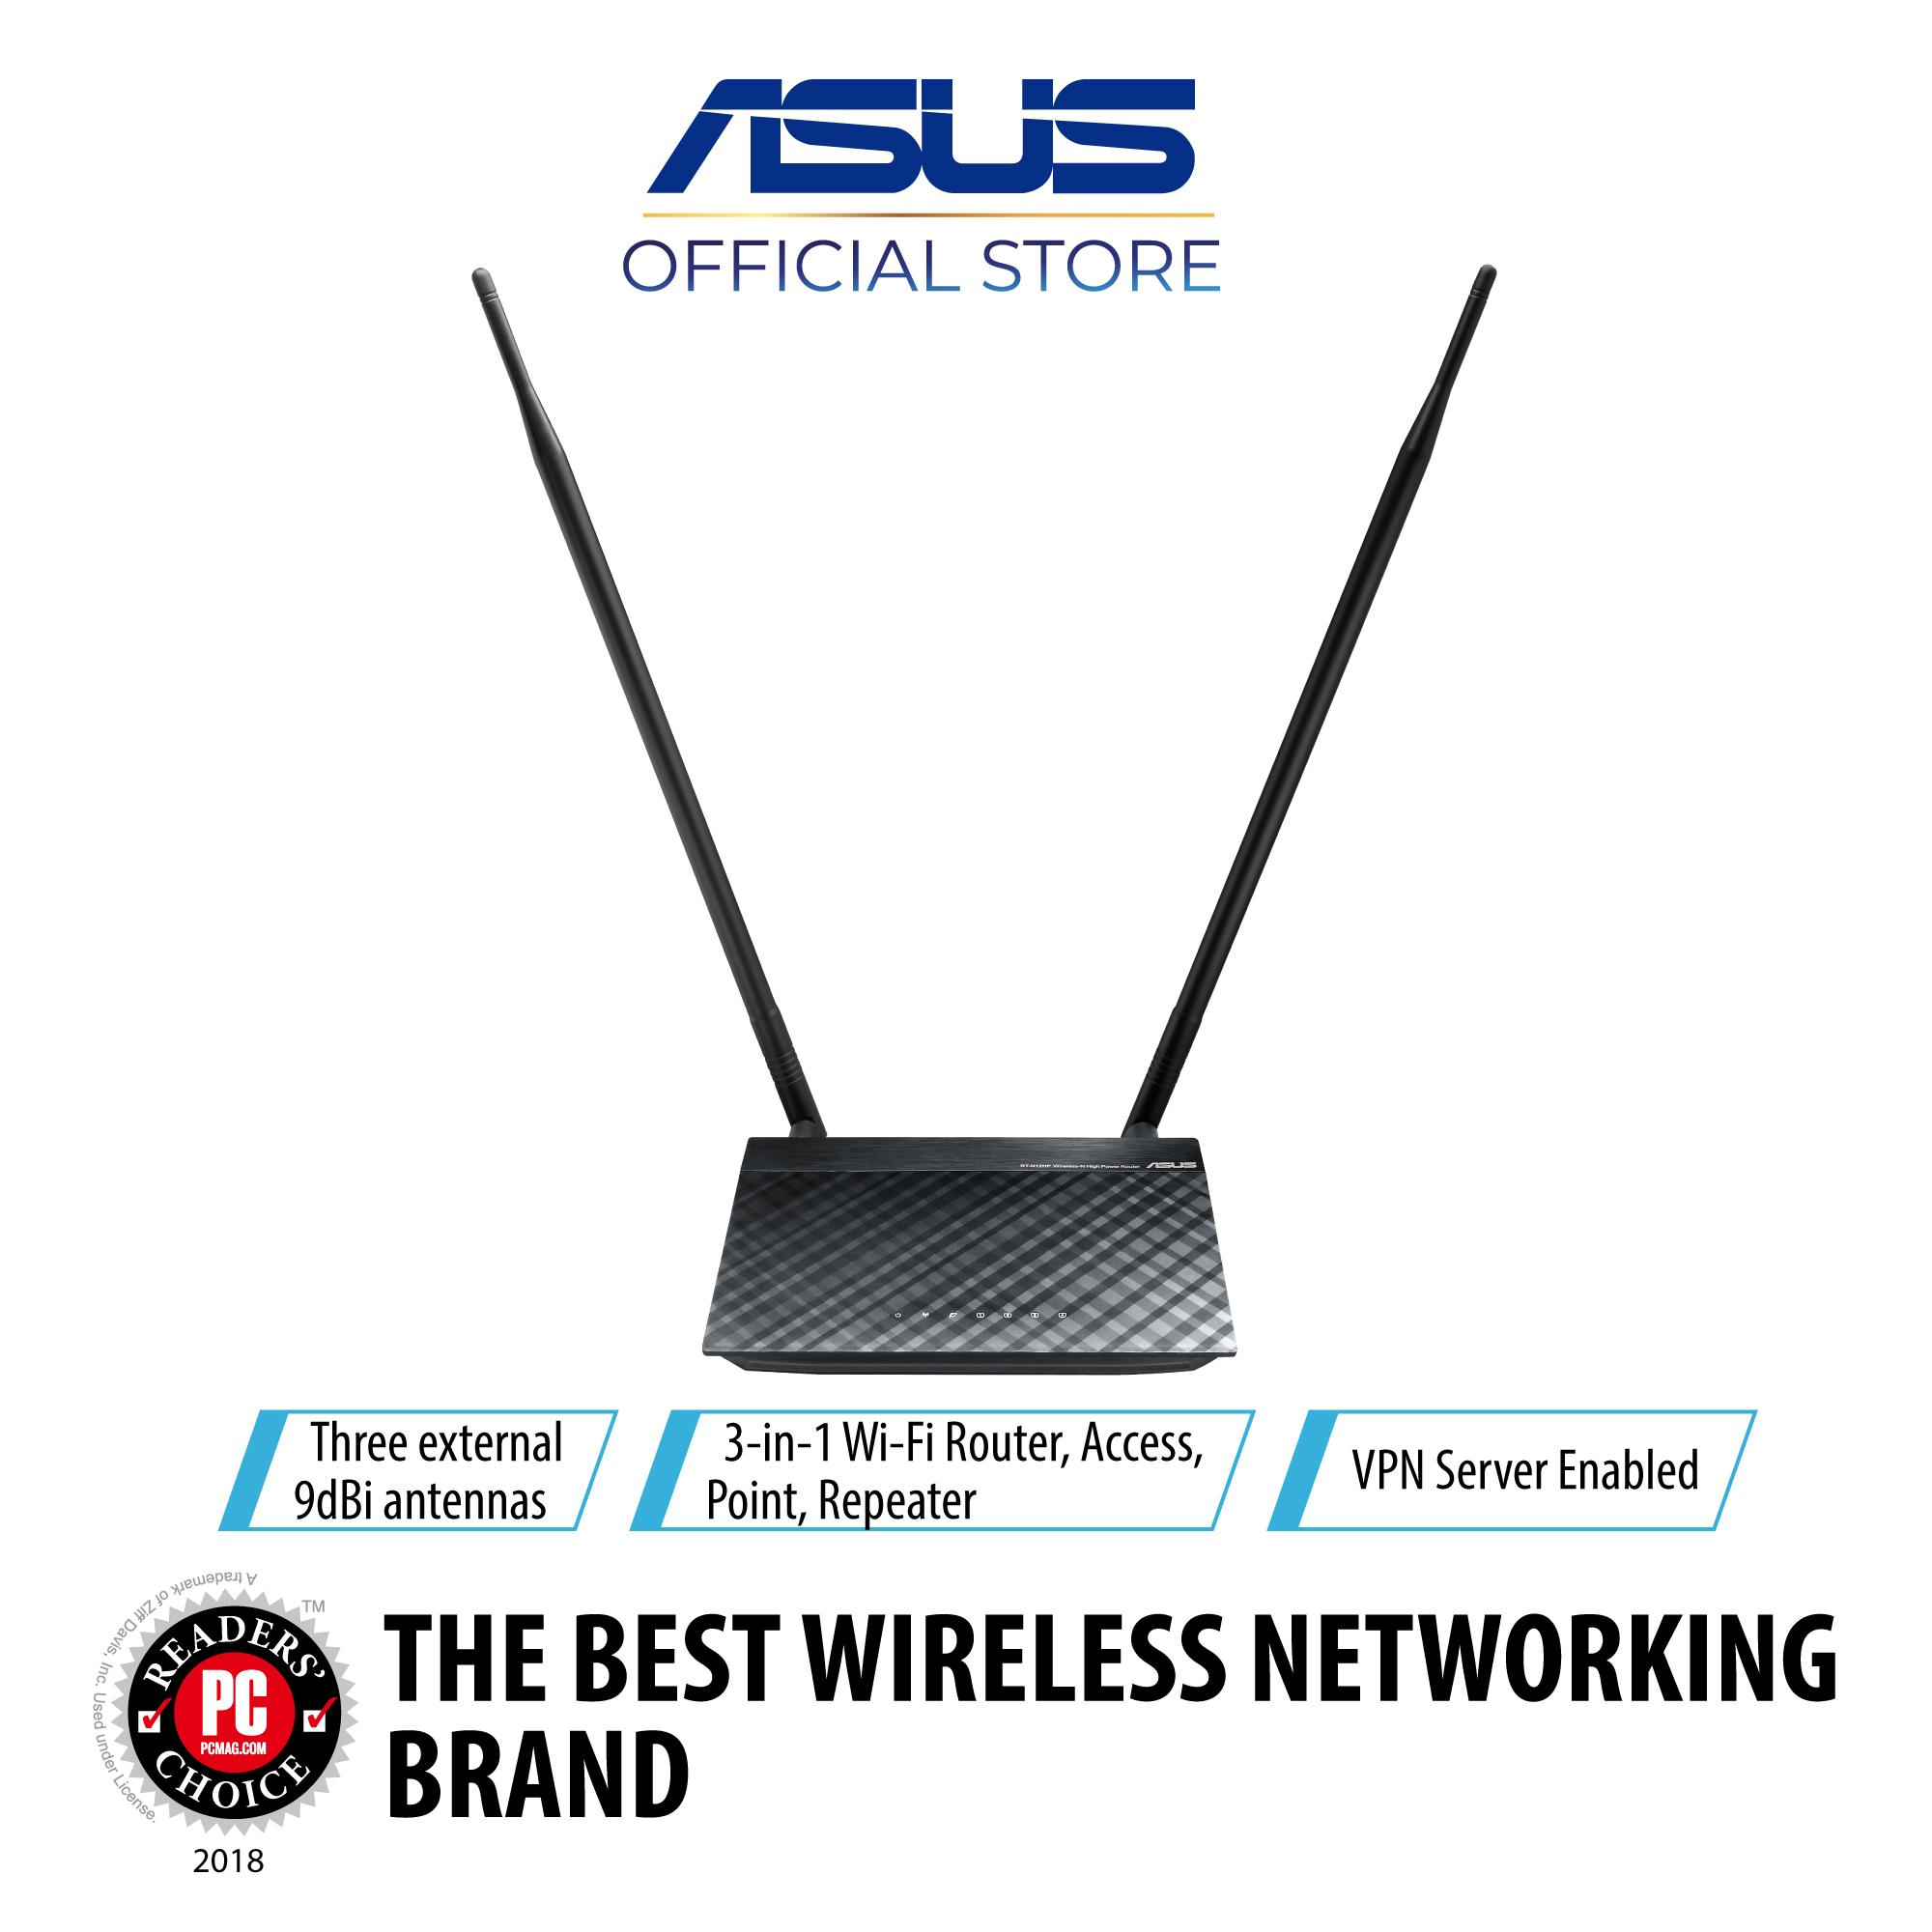 ASUS RT-N12HP N300 WiFi Router with three operating modes and two  detachable high-gain 9dBi antennas, time scheduling, VPN server and IPTV  support